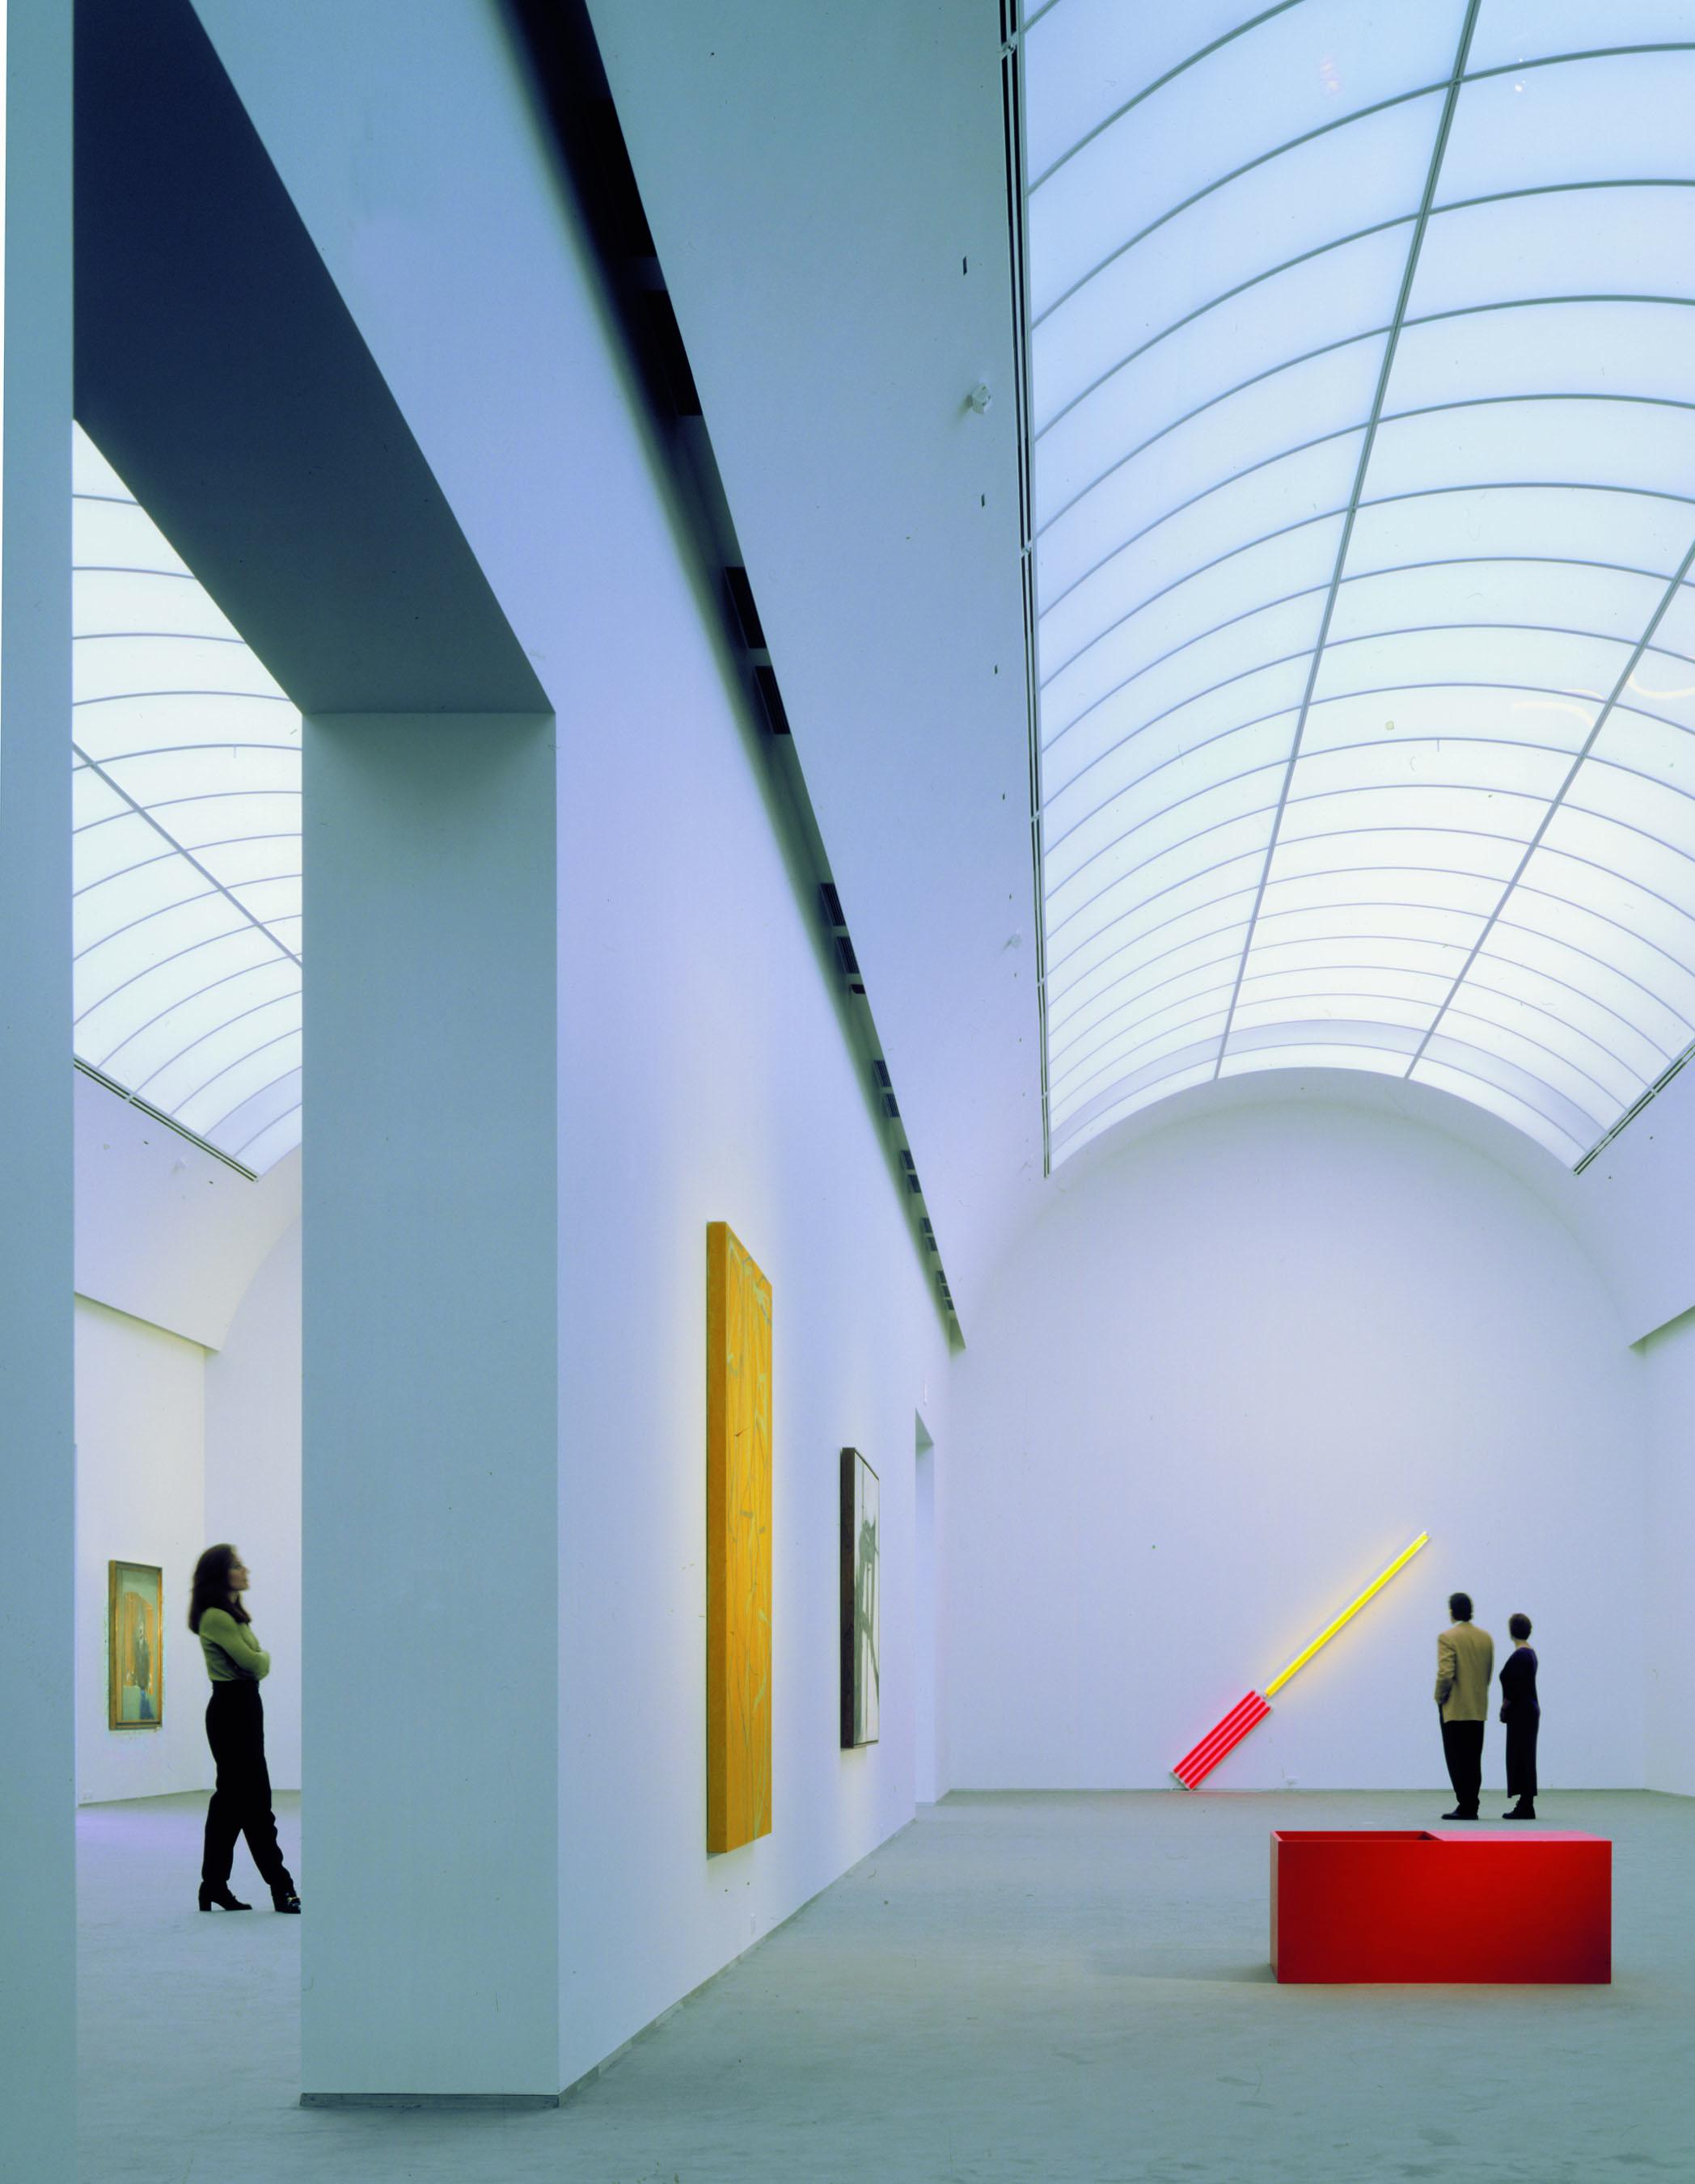 A light-filled gallery with white walls has a curved barrel vault ceiling and three visitors viewing artworks.